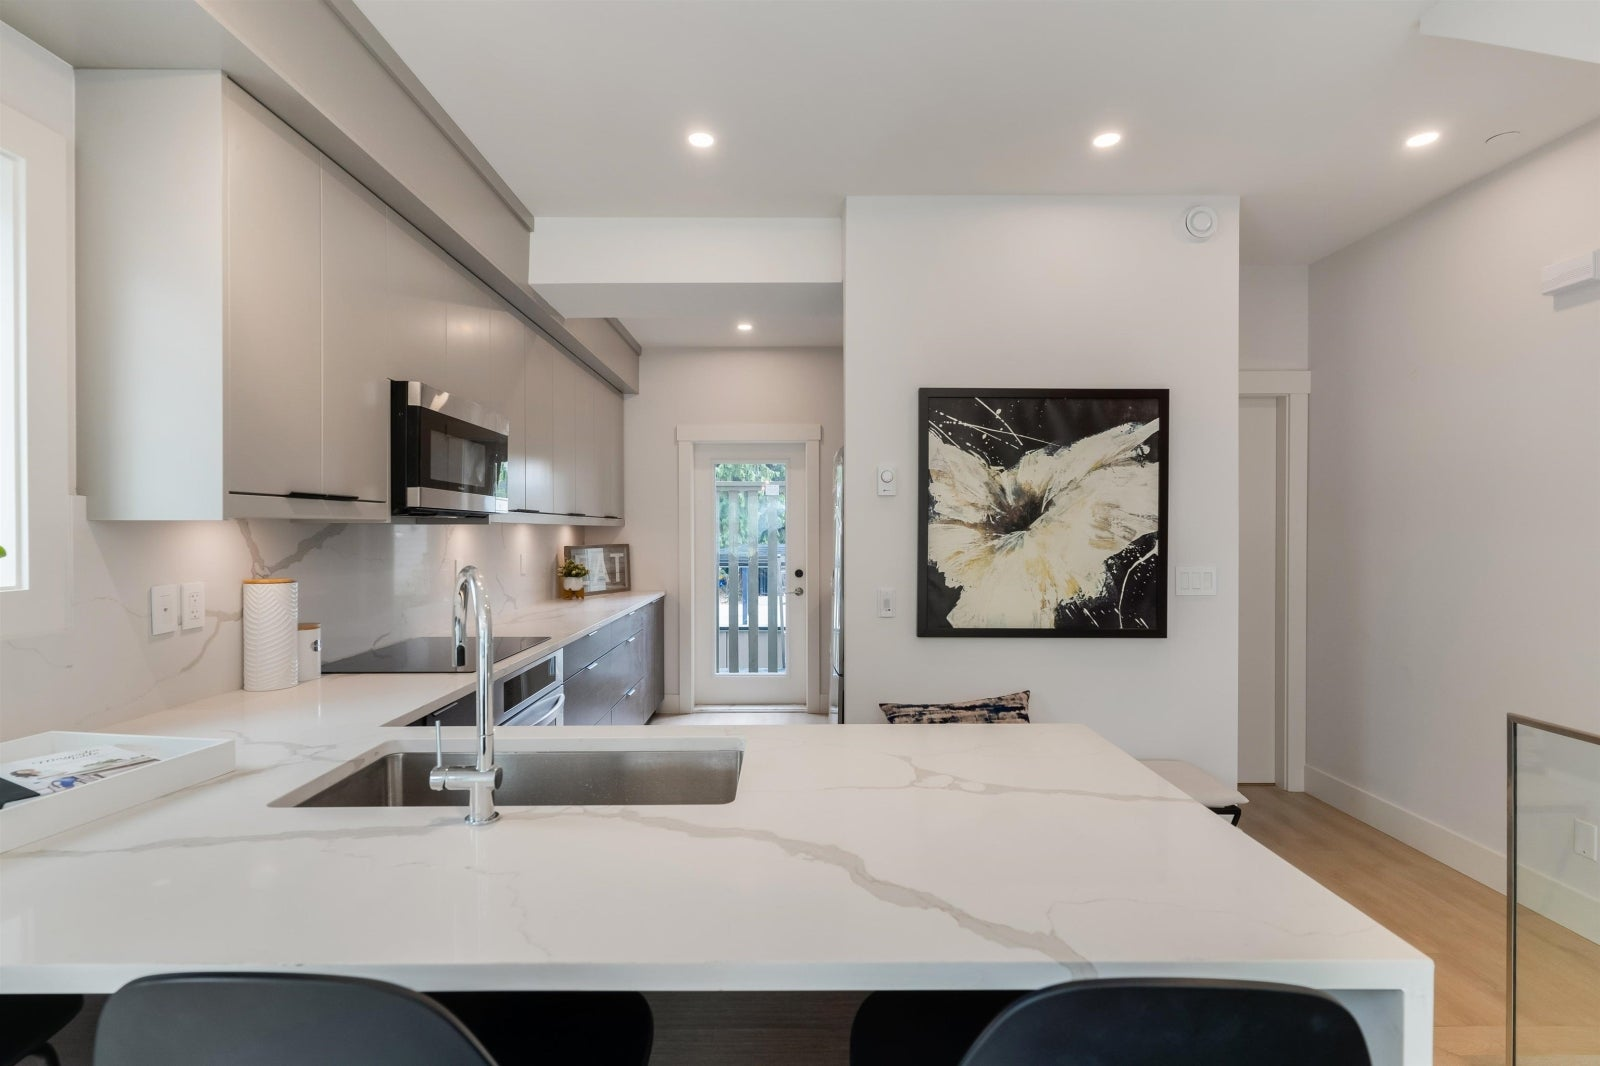 TH 1 230-232 E 8TH STREET - Central Lonsdale Townhouse for sale, 3 Bedrooms (R2610807) #7